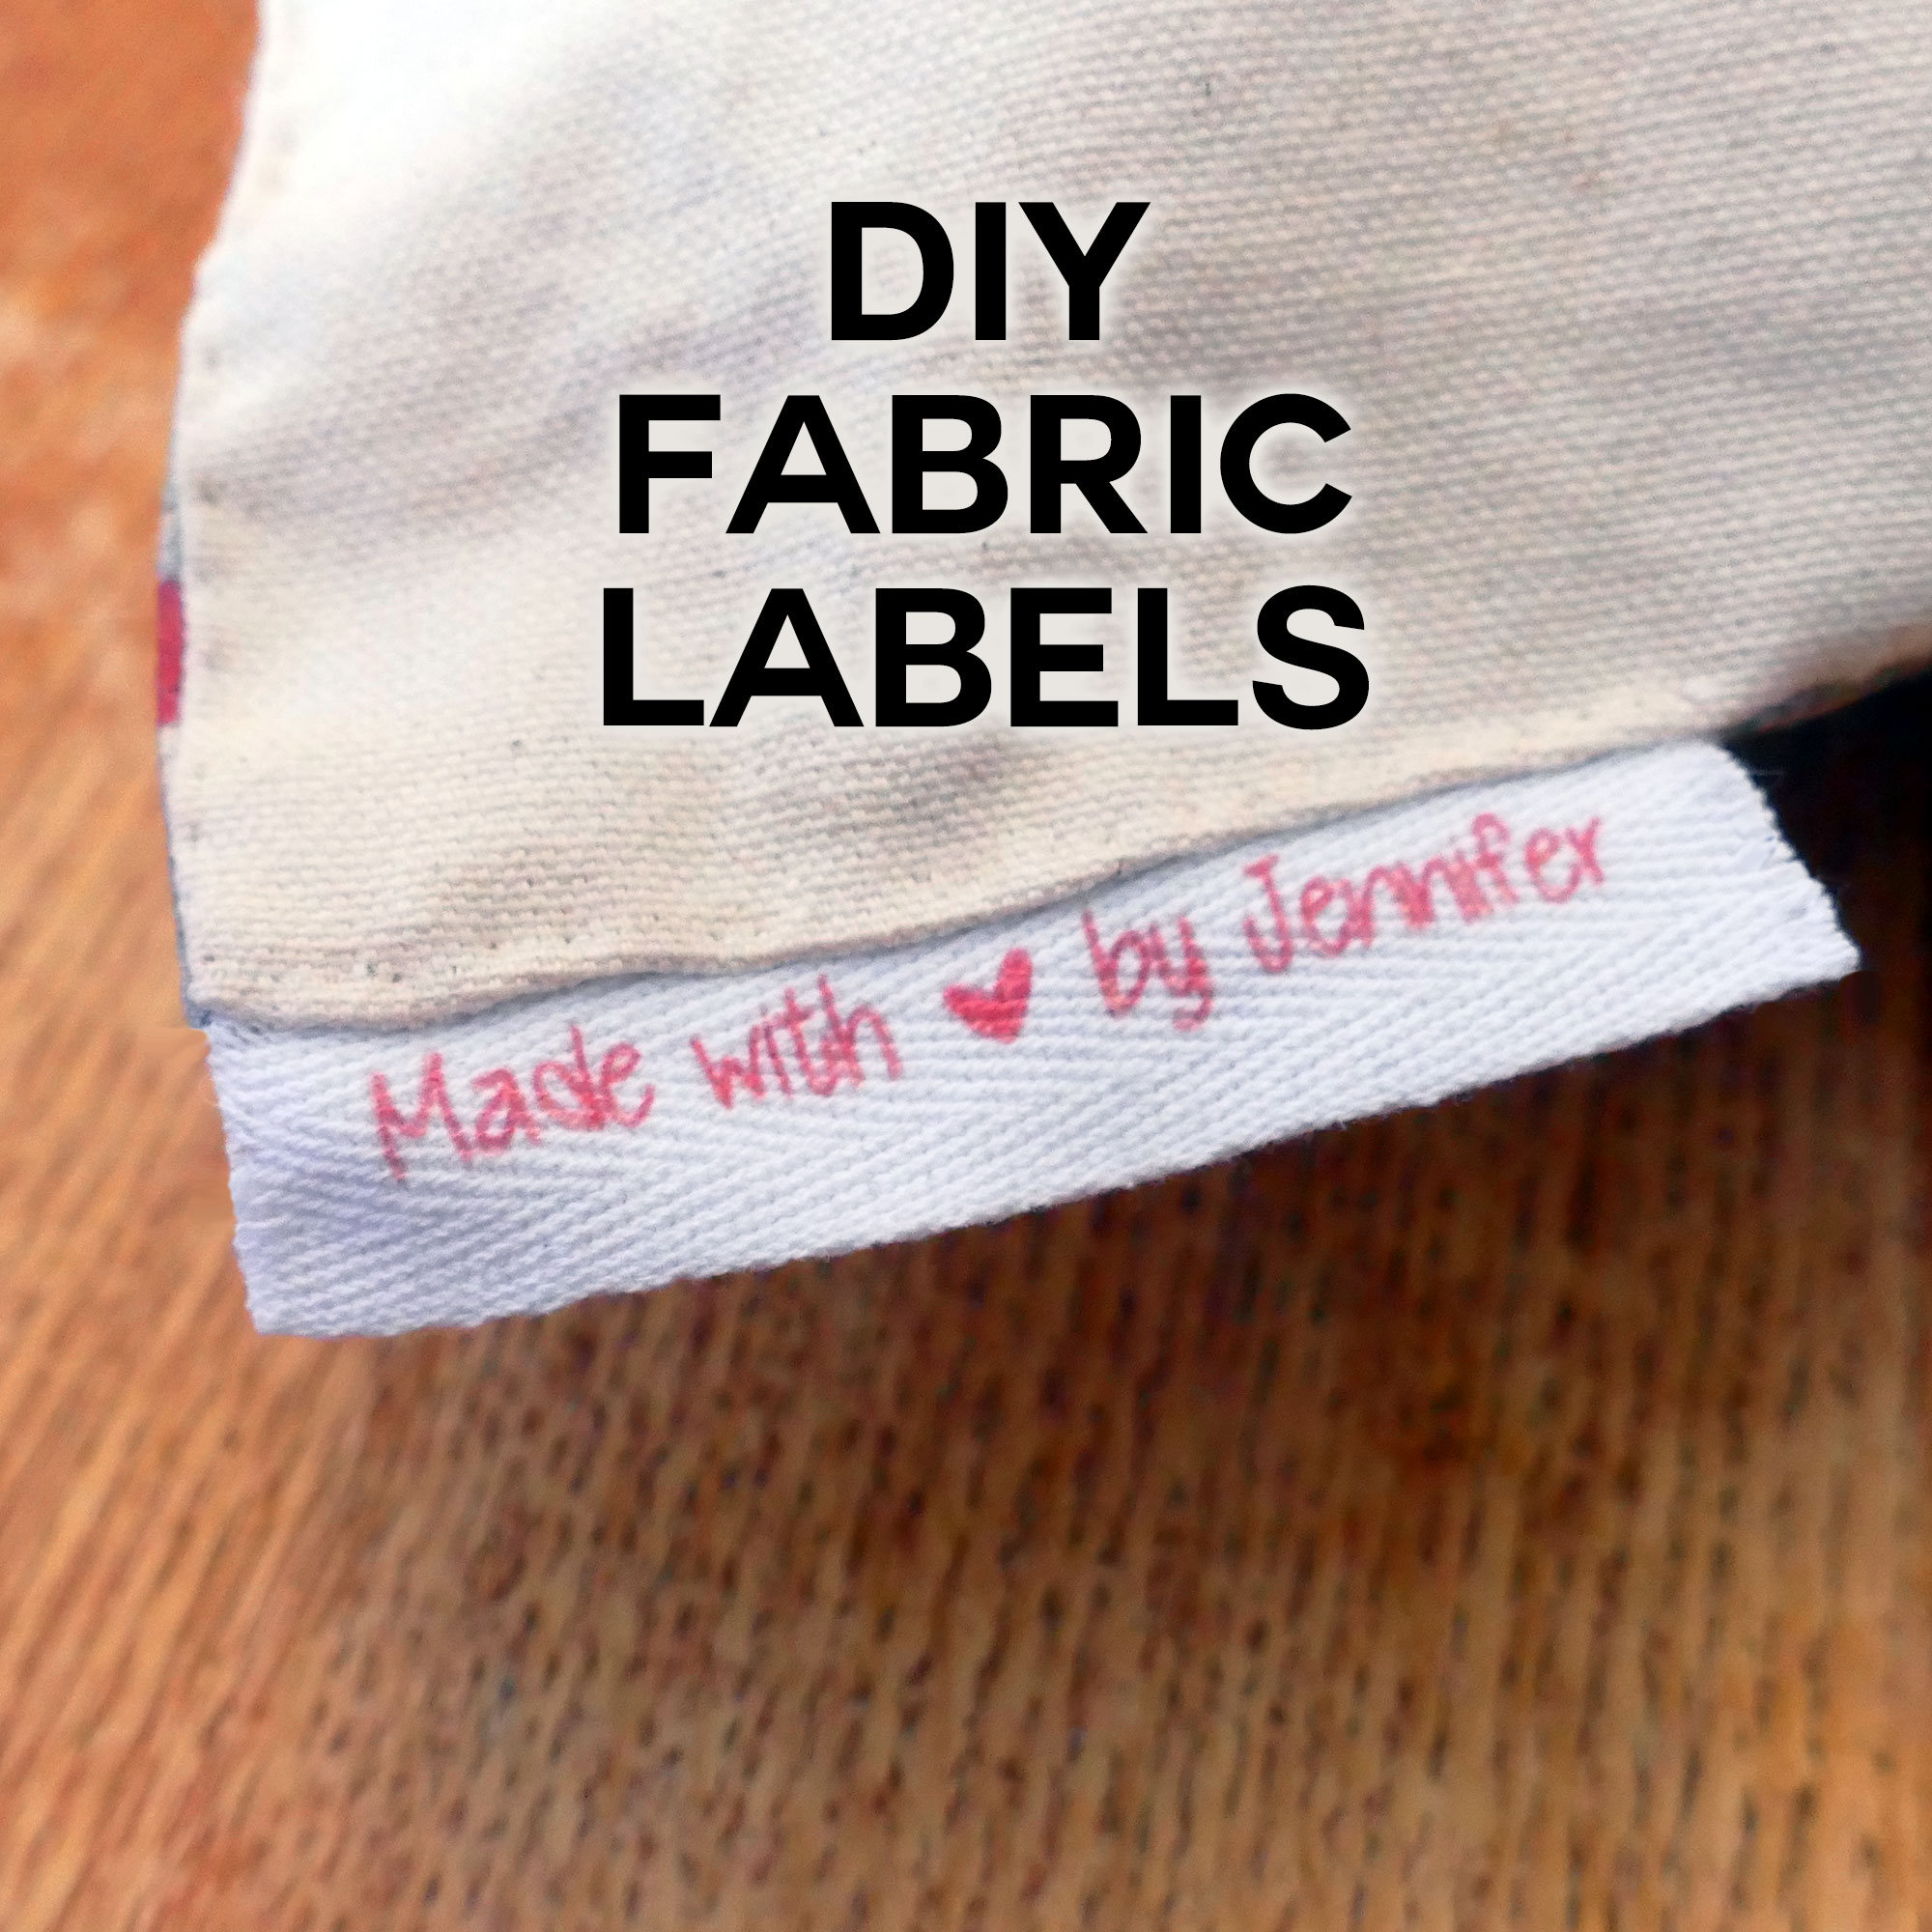 DIY Fabric Labels on Twill Tape - Jennifer Maker